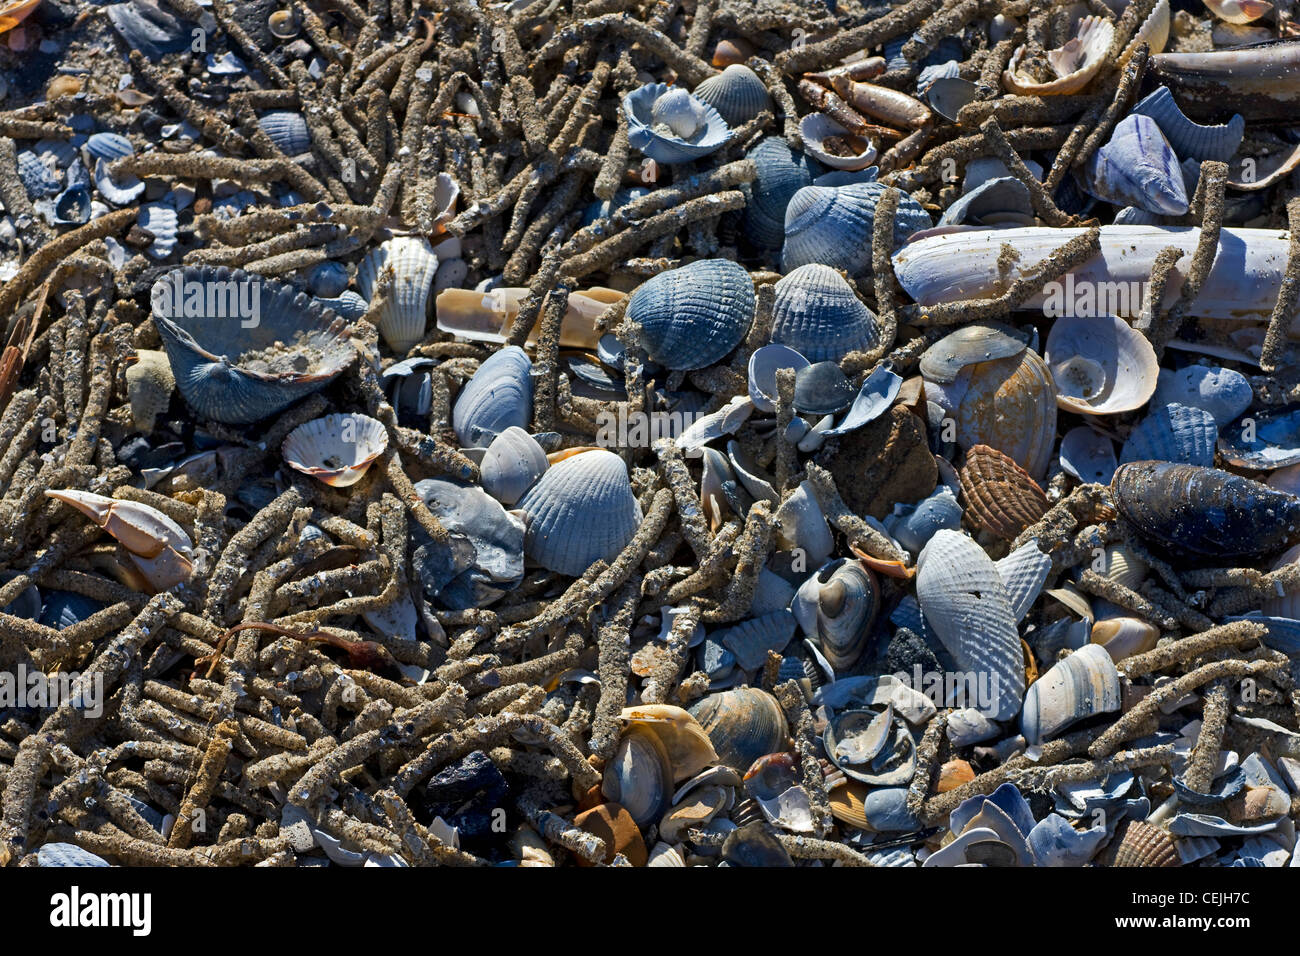 Empty cases of tube worms (Polychaeta ) amongst shells on North Sea beach, Belgium Stock Photo